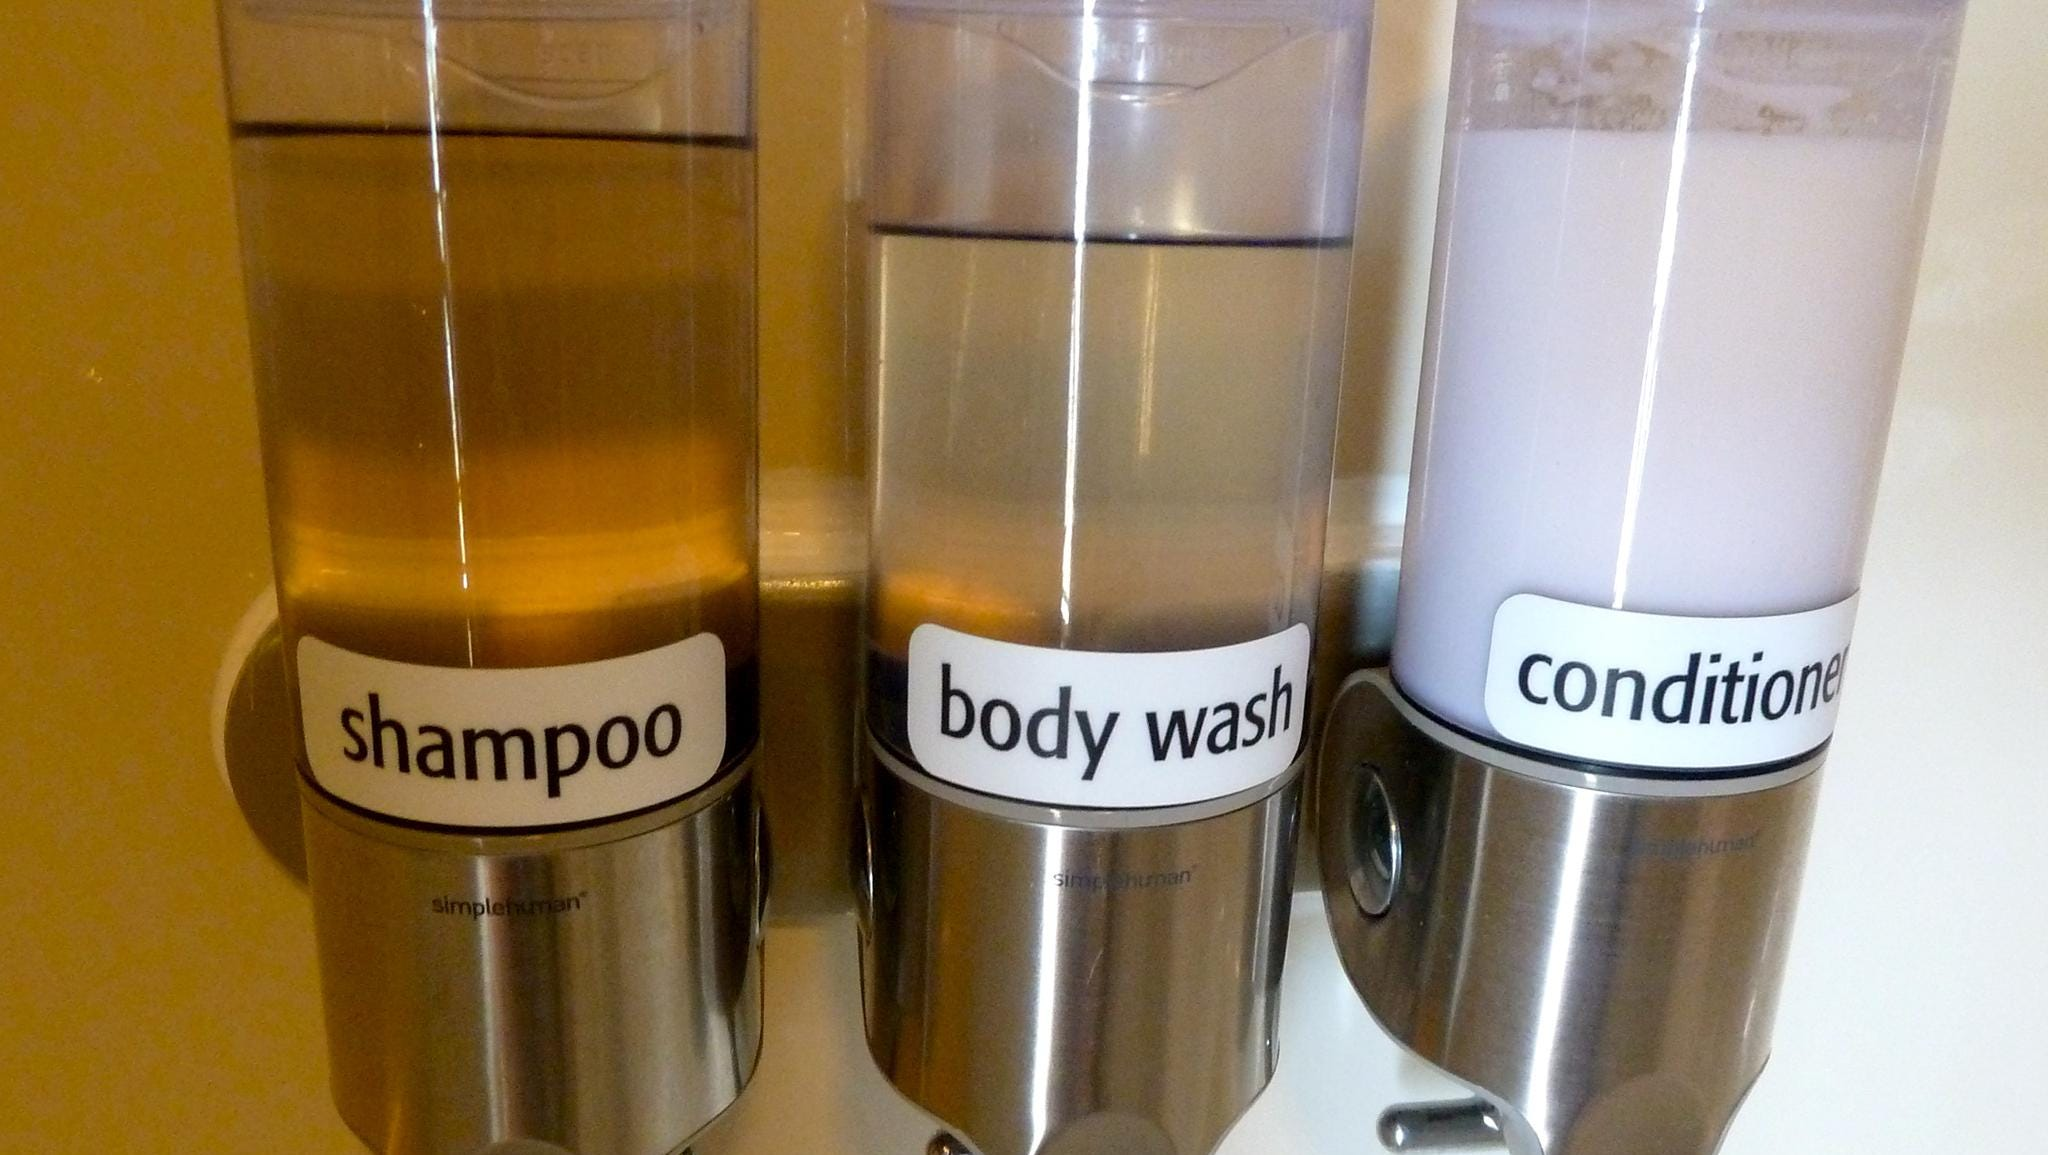 Eliminating the need for miniature plastic bottles, bathrooms are equipped with shampoo, body wash and conditioner dispensers. Un-Cruise uses all-natural, high quality, eco-friendly EO brand products.